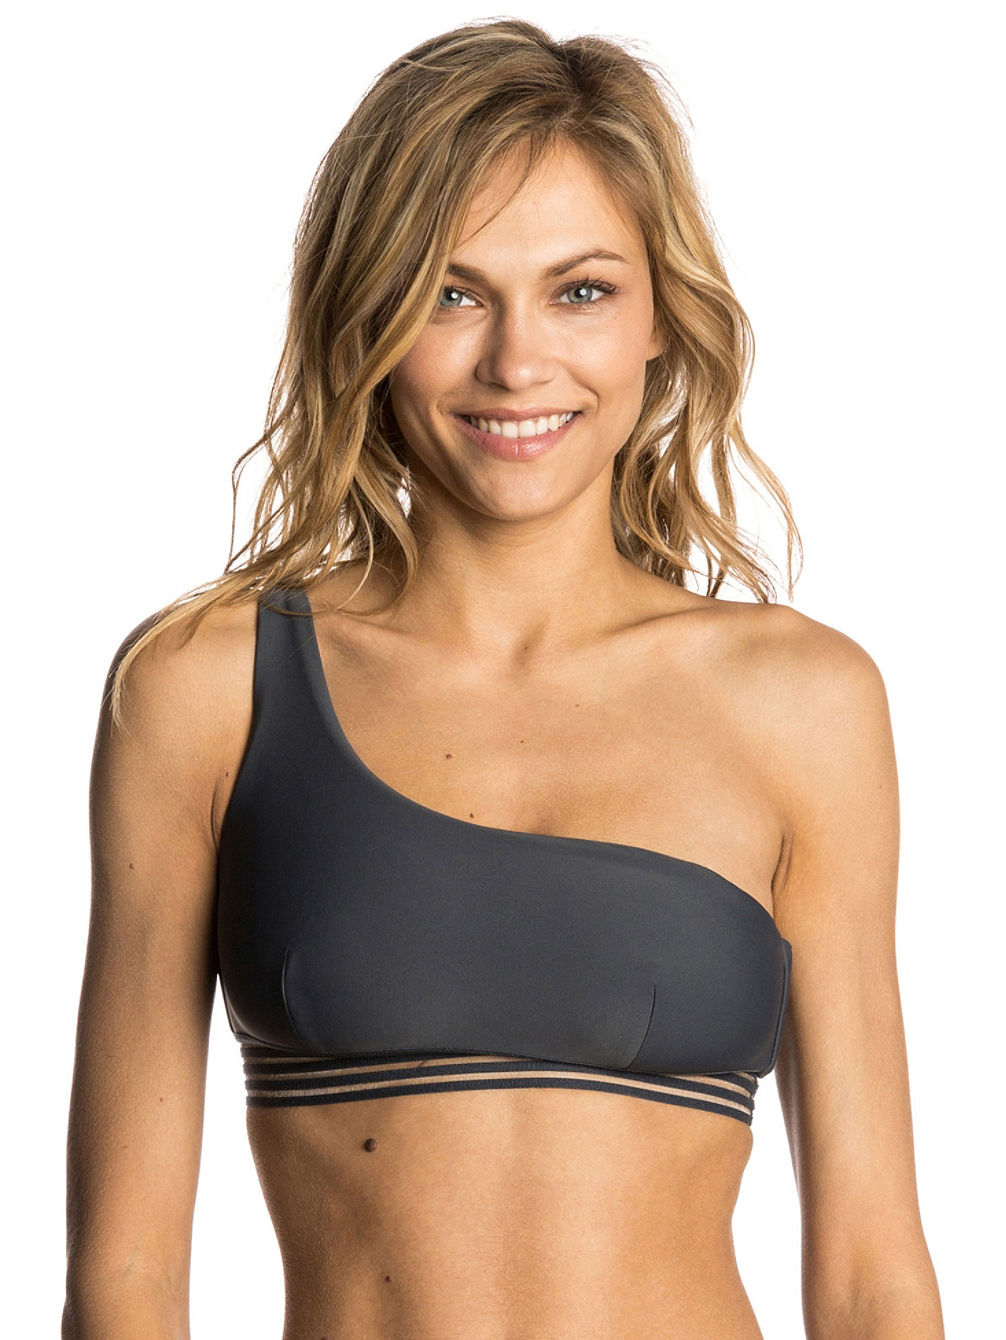 Illusion One Strap Top Bikini Top